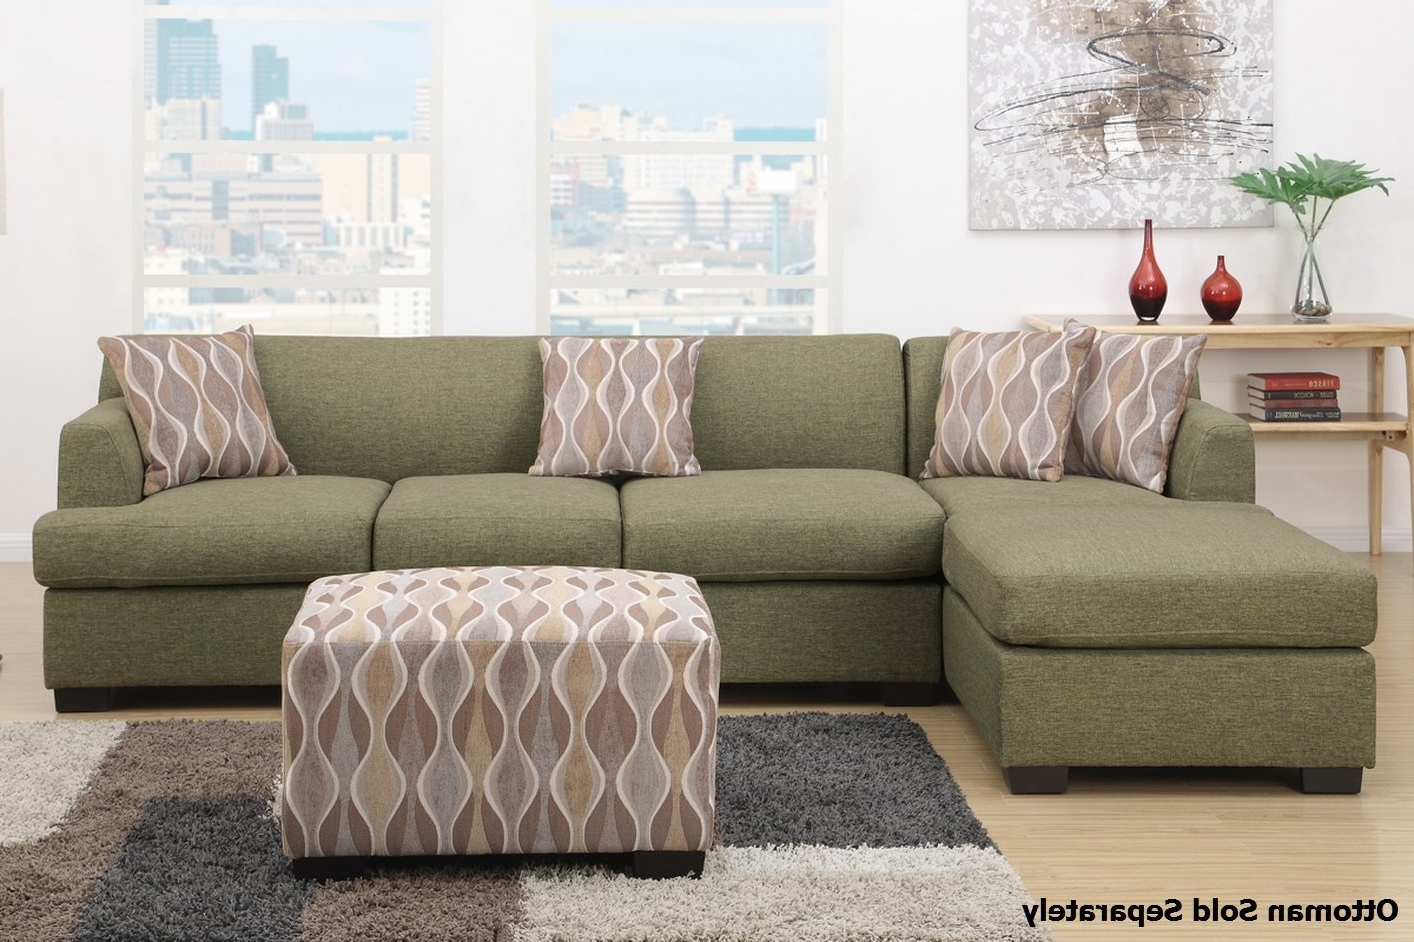 Montreal Iii Green Fabric Sectional Sofa – Steal A Sofa Furniture With Regard To Recent Green Sectional Sofas (View 3 of 20)